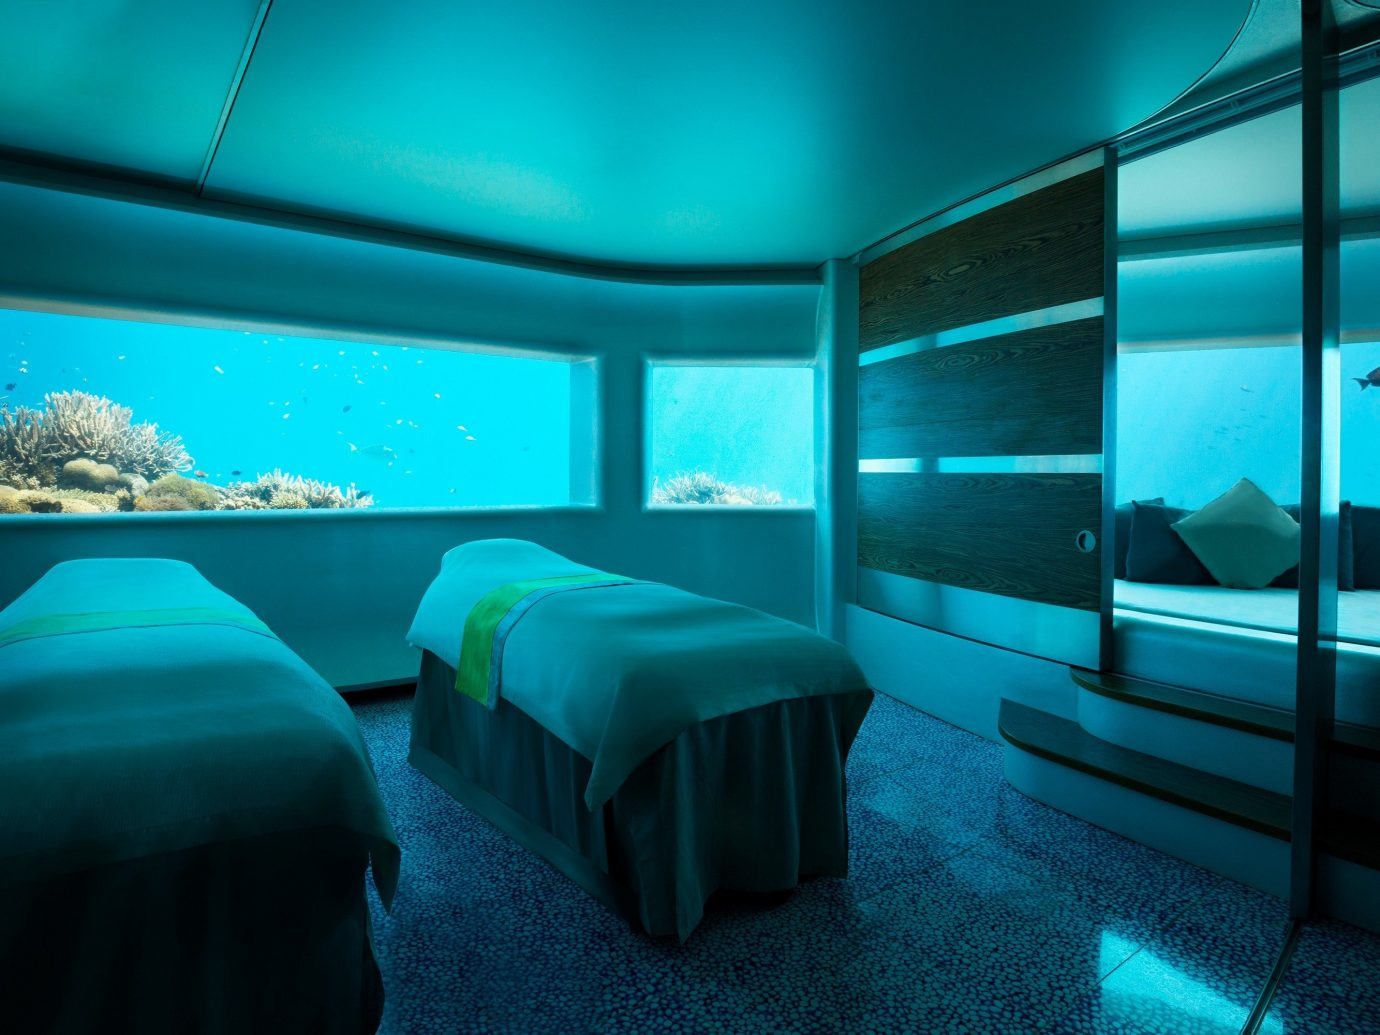 Scuba Diving + Snorkeling Trip Ideas indoor bed window blue room light screenshot lighting interior design underwater computer wallpaper Design scenographer Bedroom